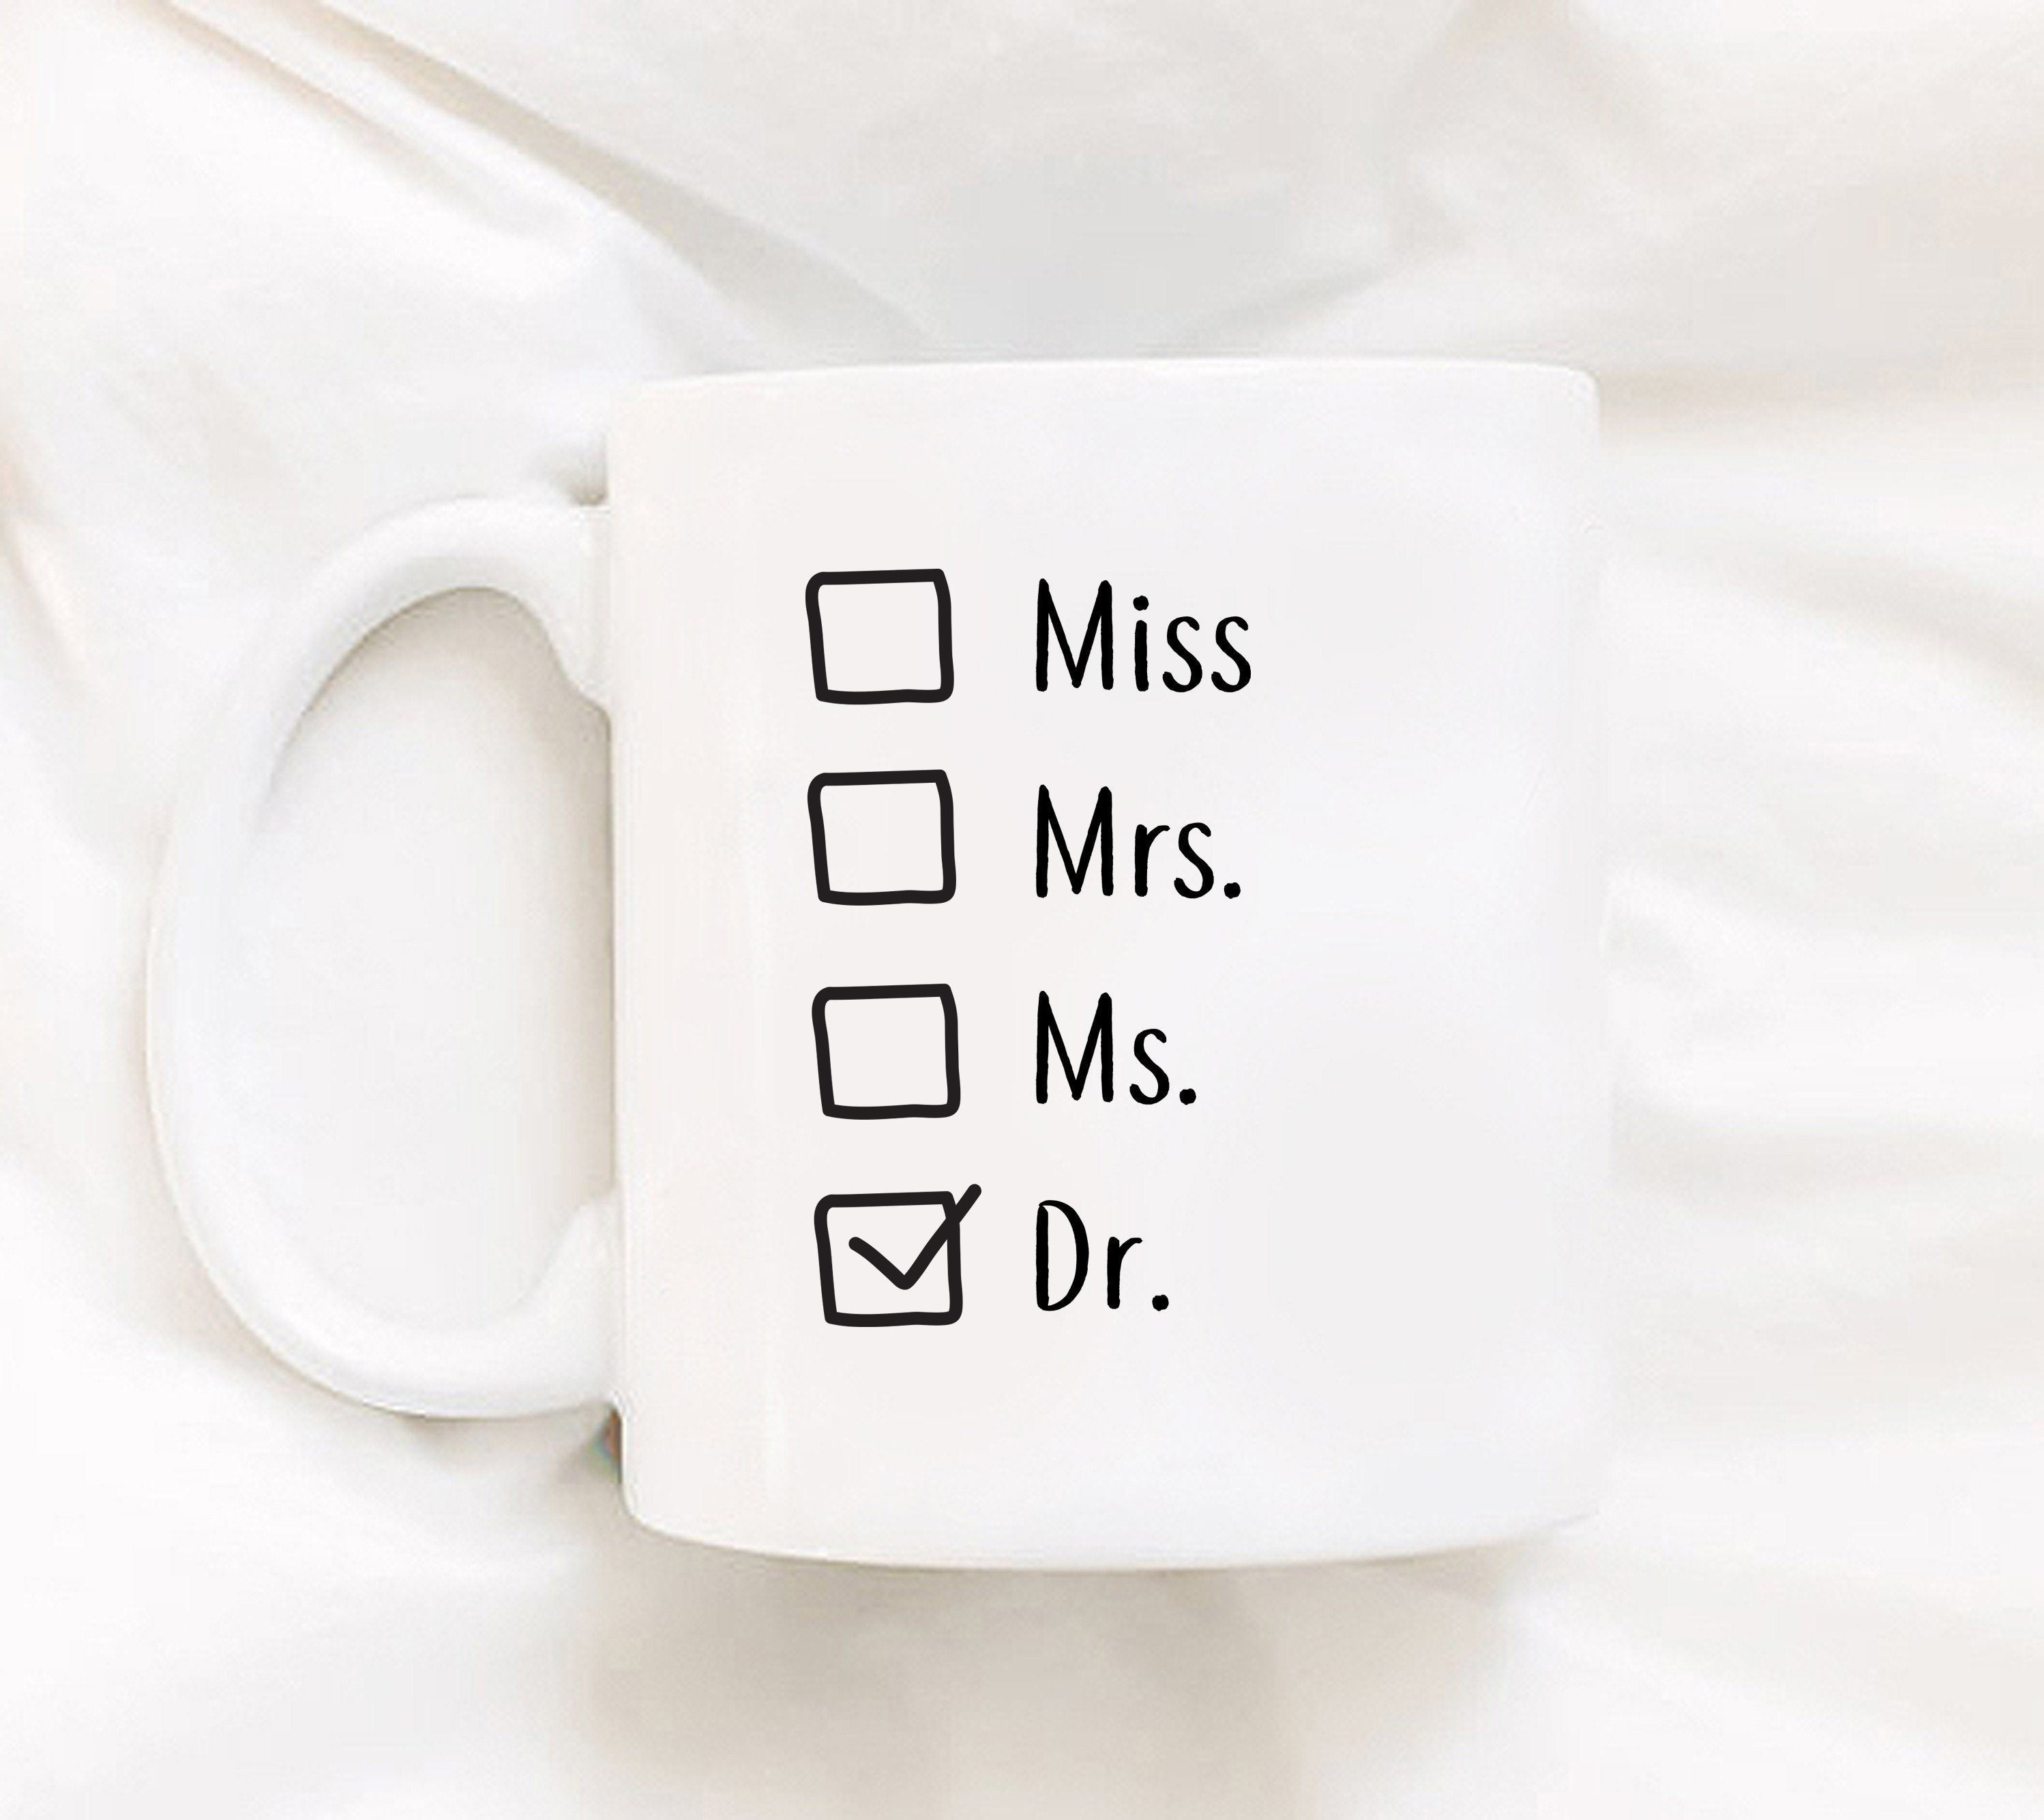 Coffee Mug - Miss Mrs Ms Doctor Funny Mug - 11 Oz Coffee Mug